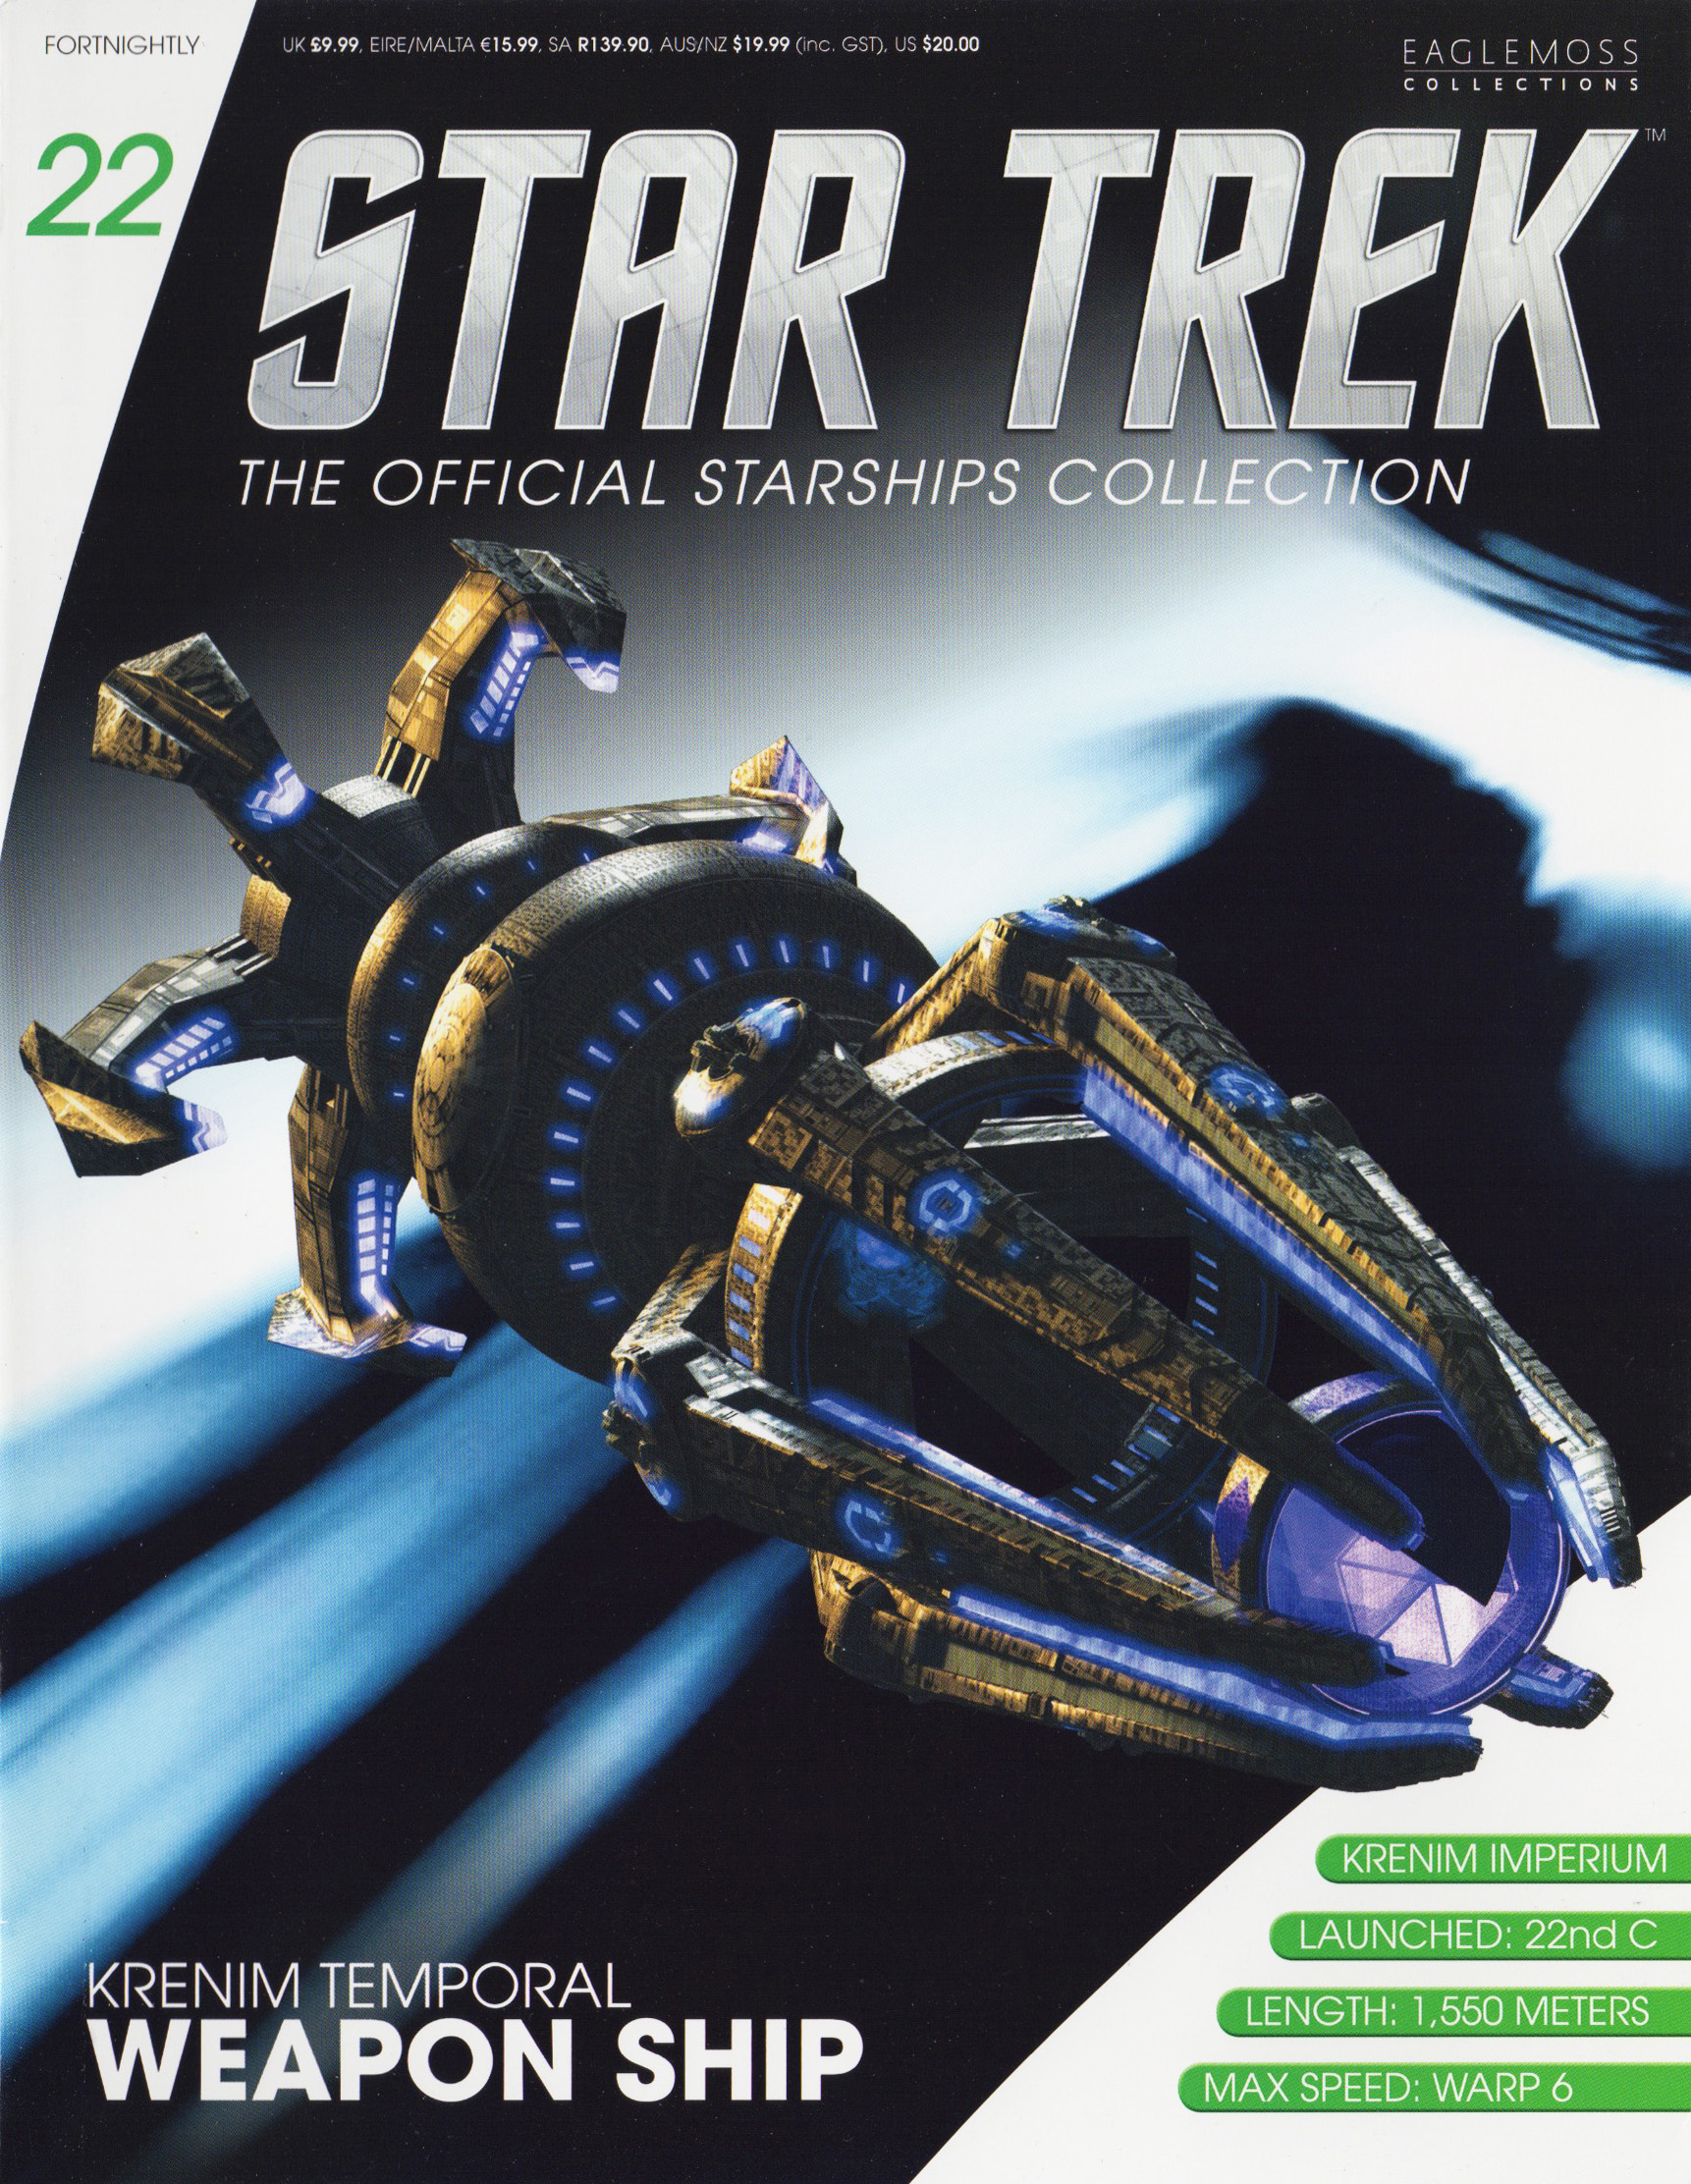 Eaglemoss Star Trek Starships Issue 22